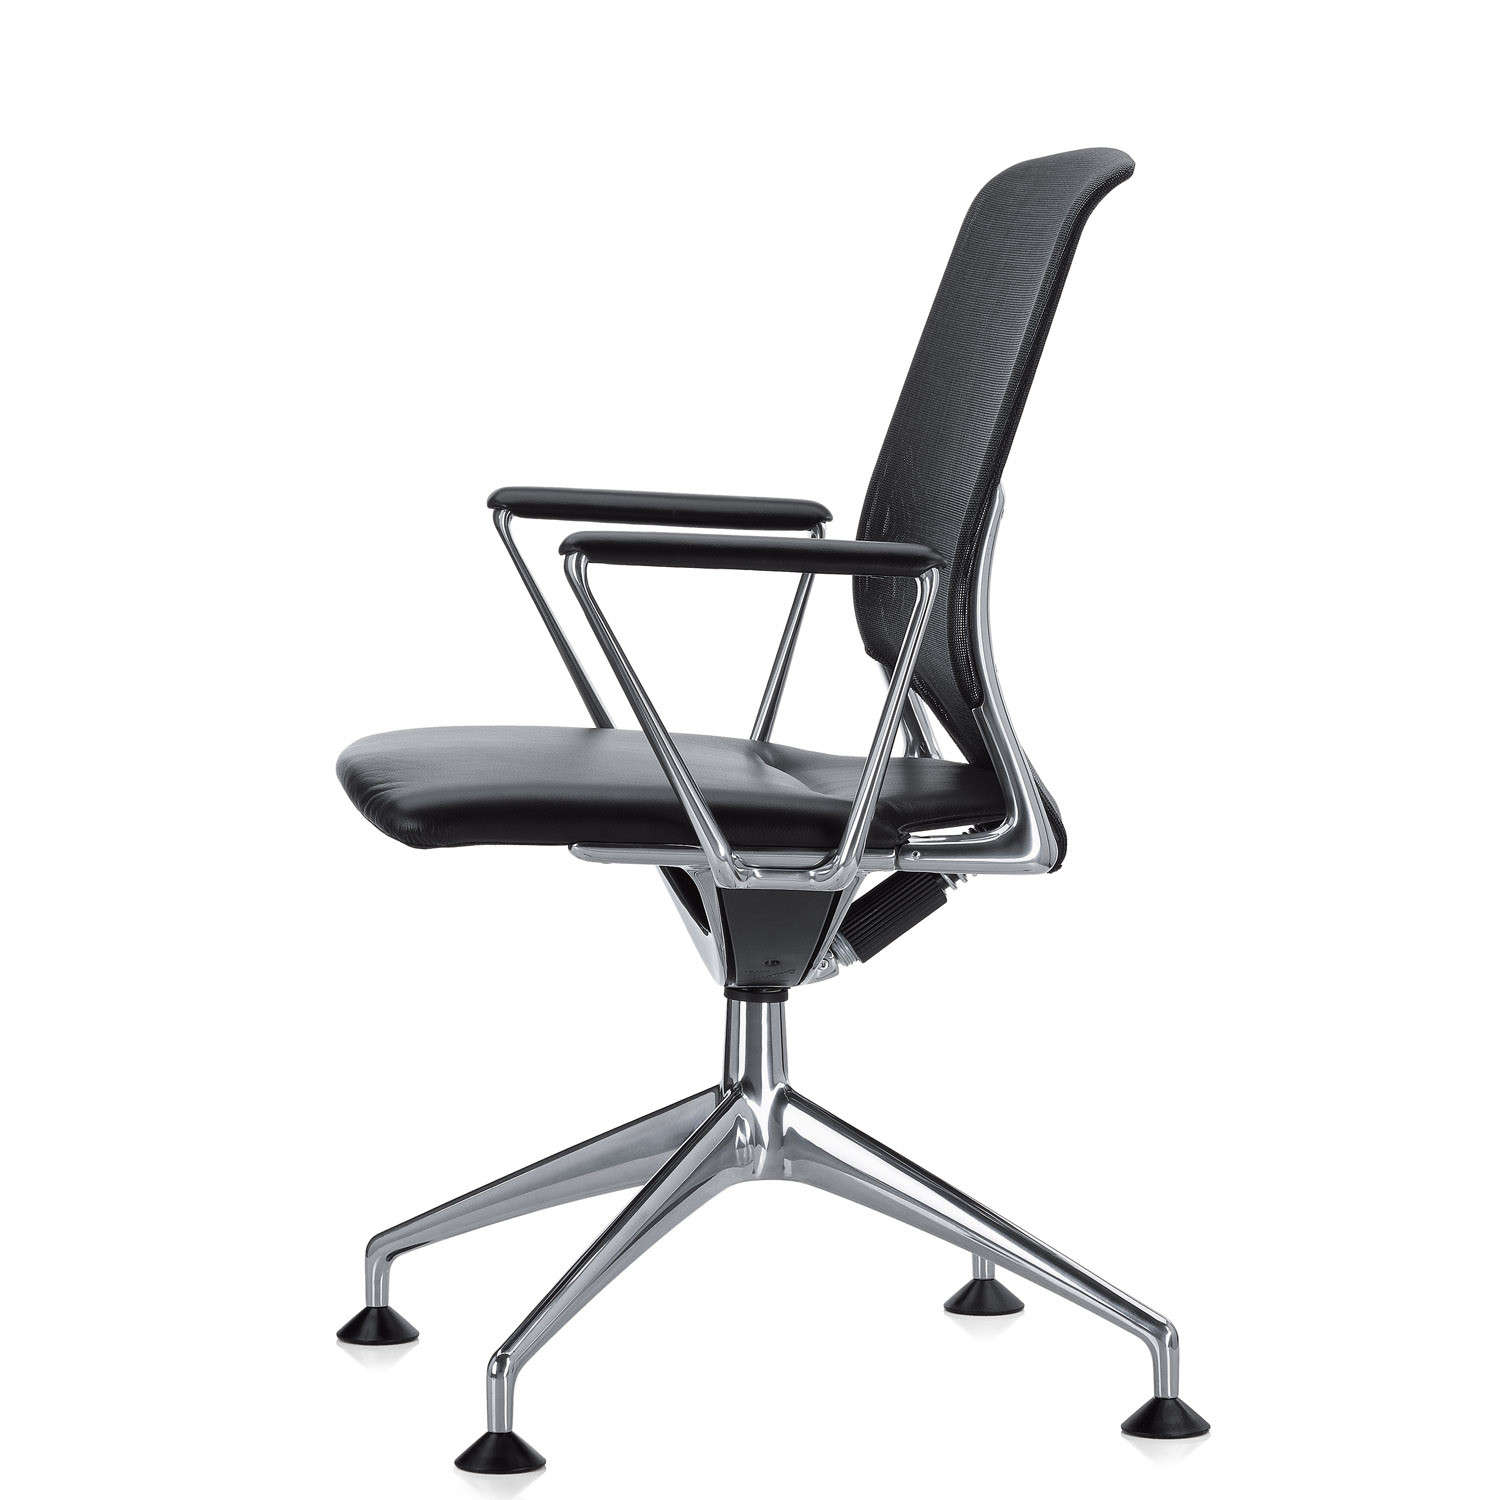 Meda Meeting Chair by Vitra